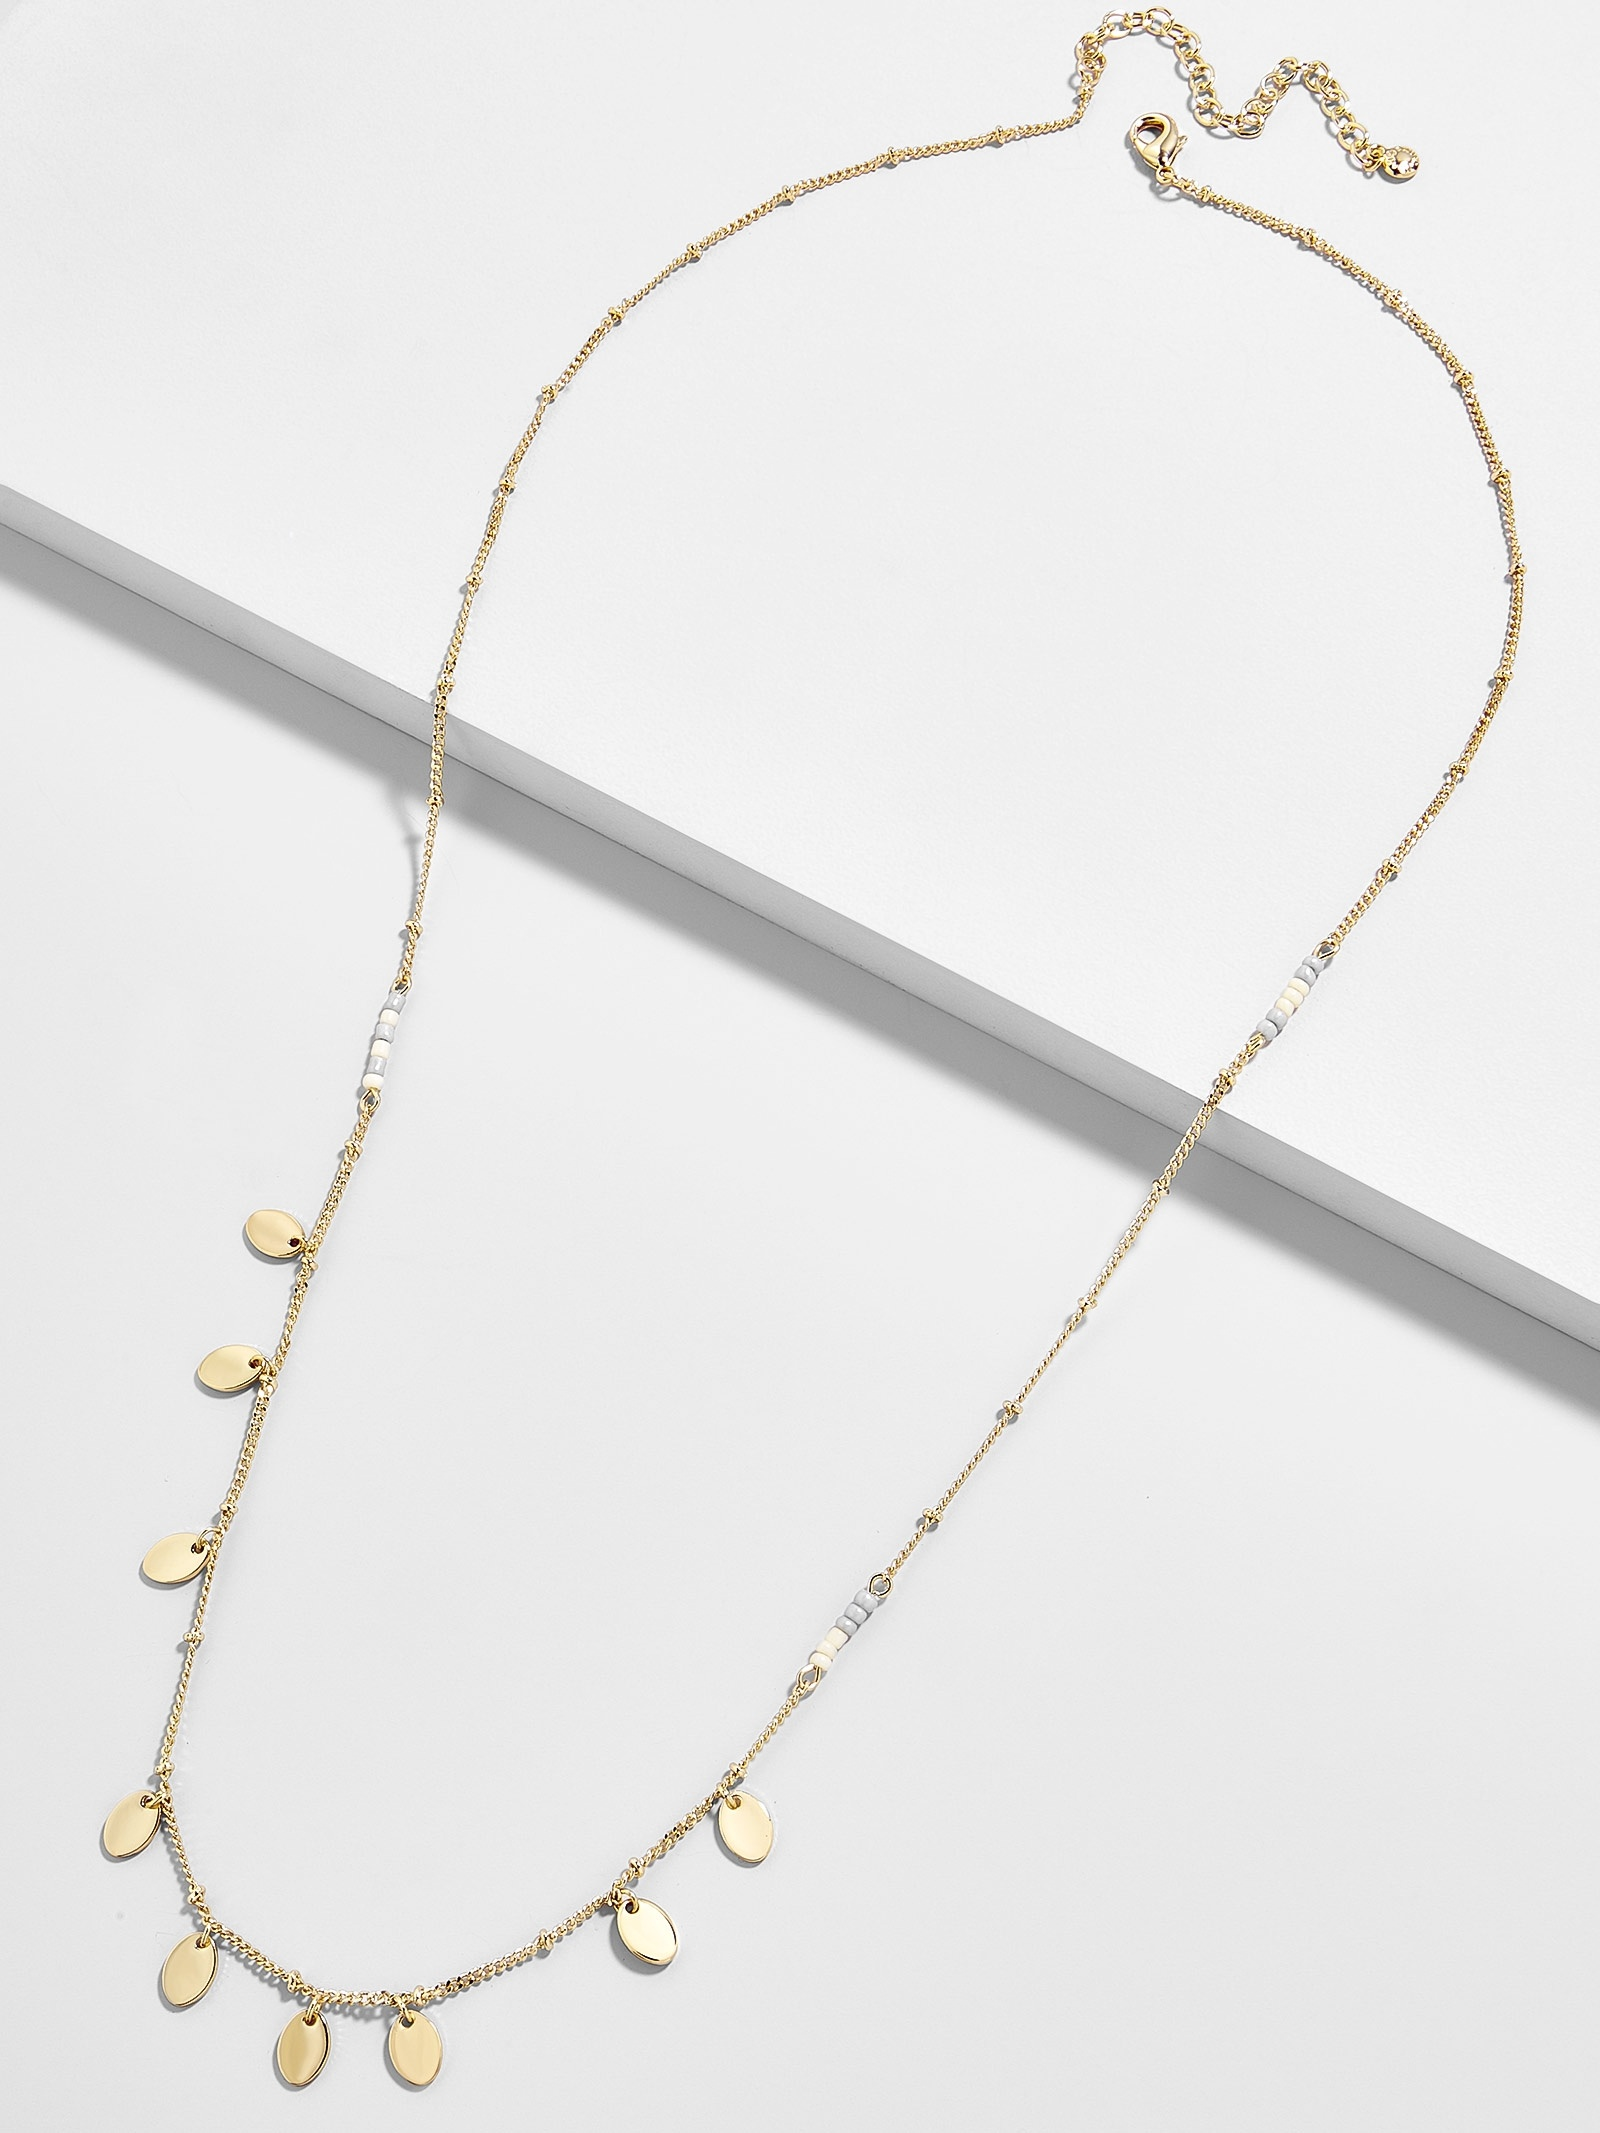 Aveline Necklace by Baublebar